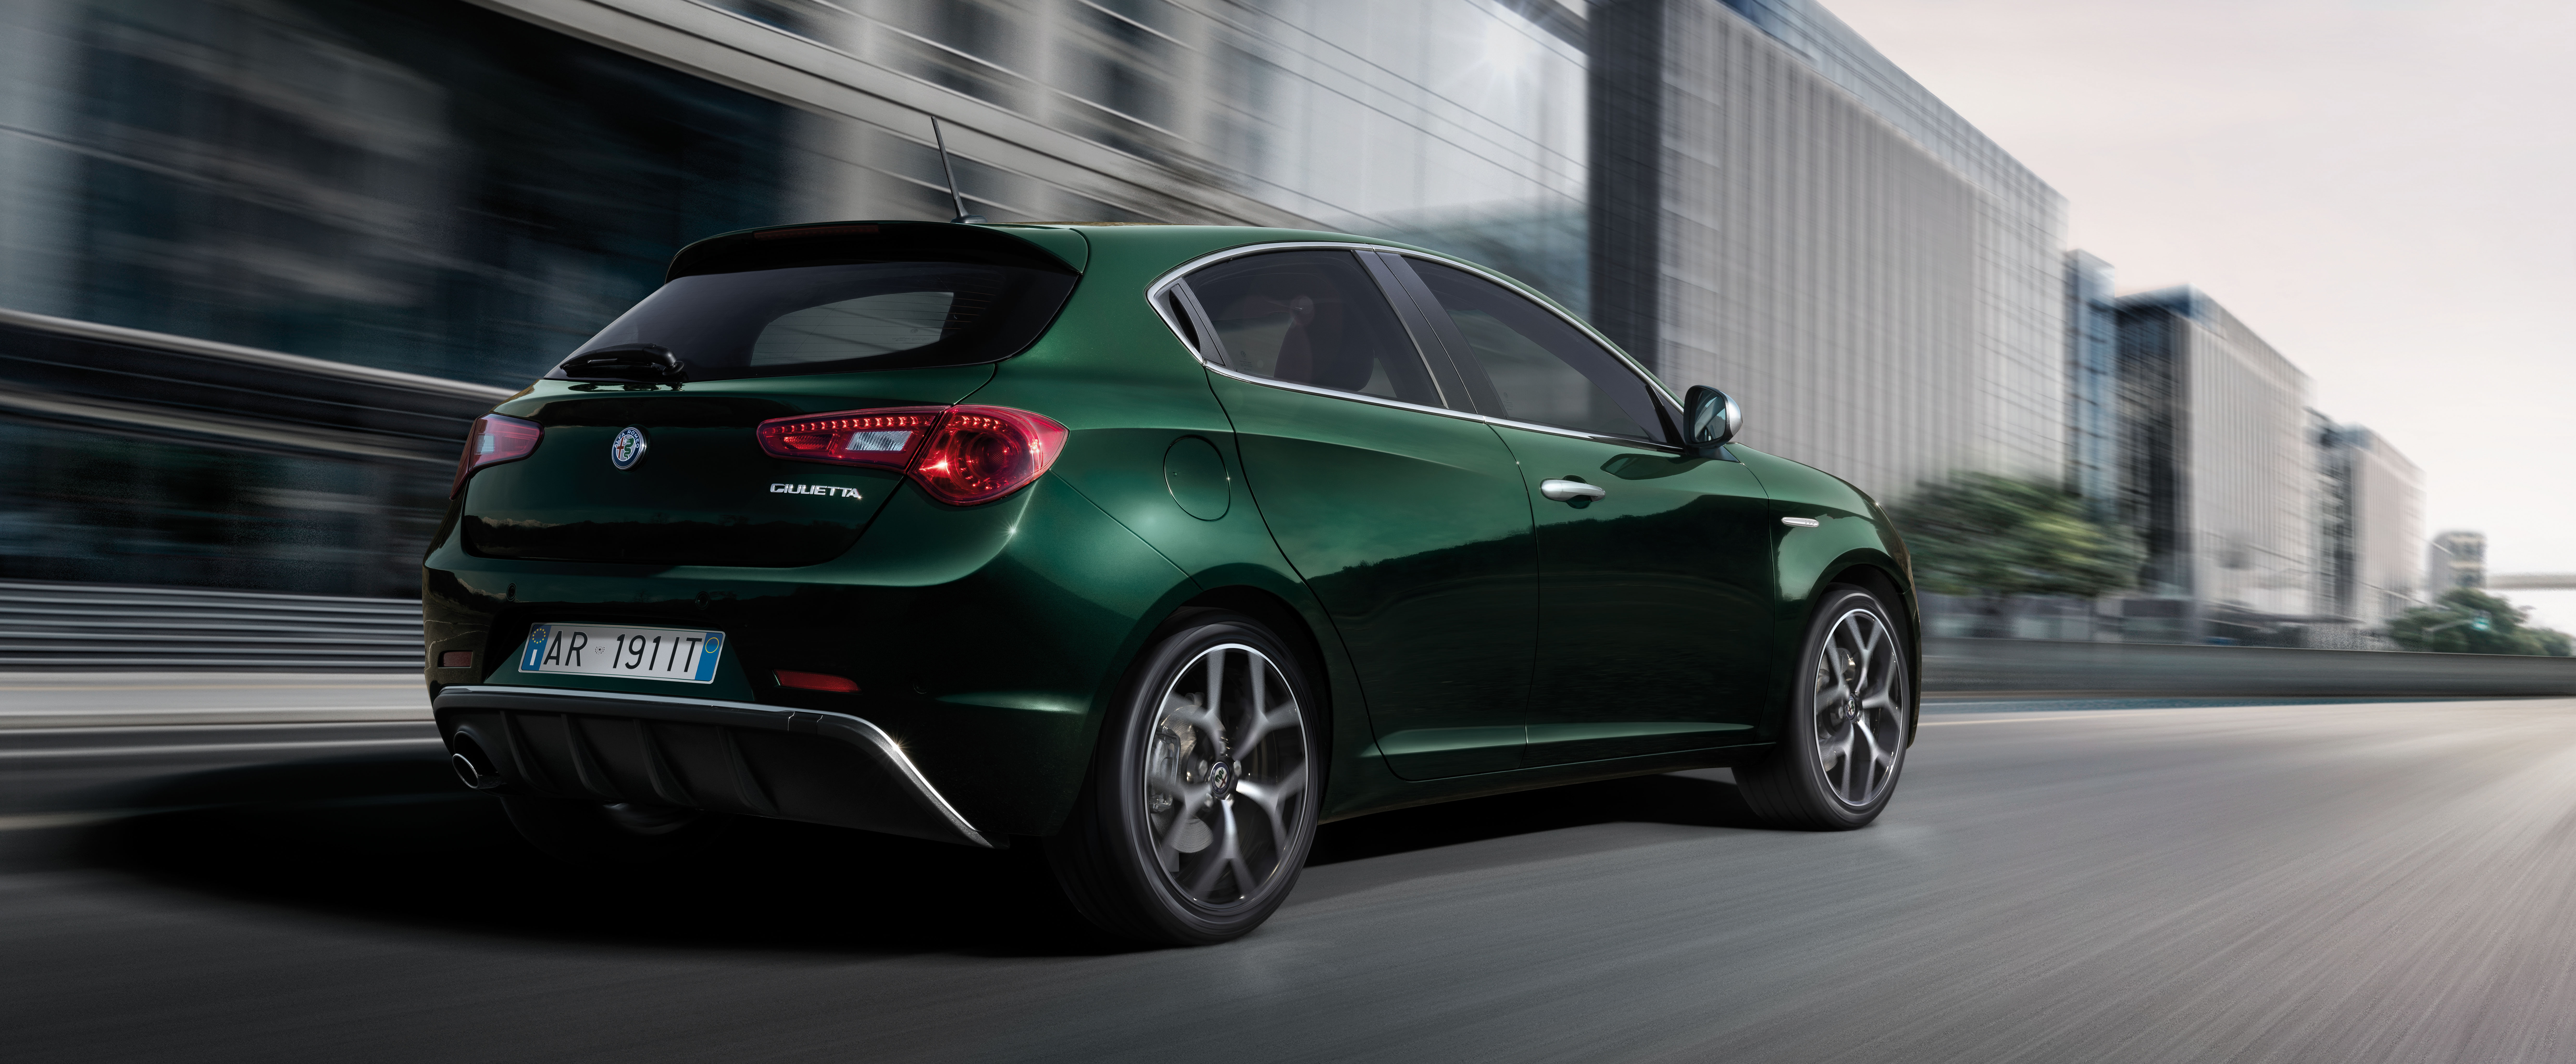 Alfa Romeo Giulietta >> The New Alfa Romeo Giulietta Range Press Fiat Group Automobiles